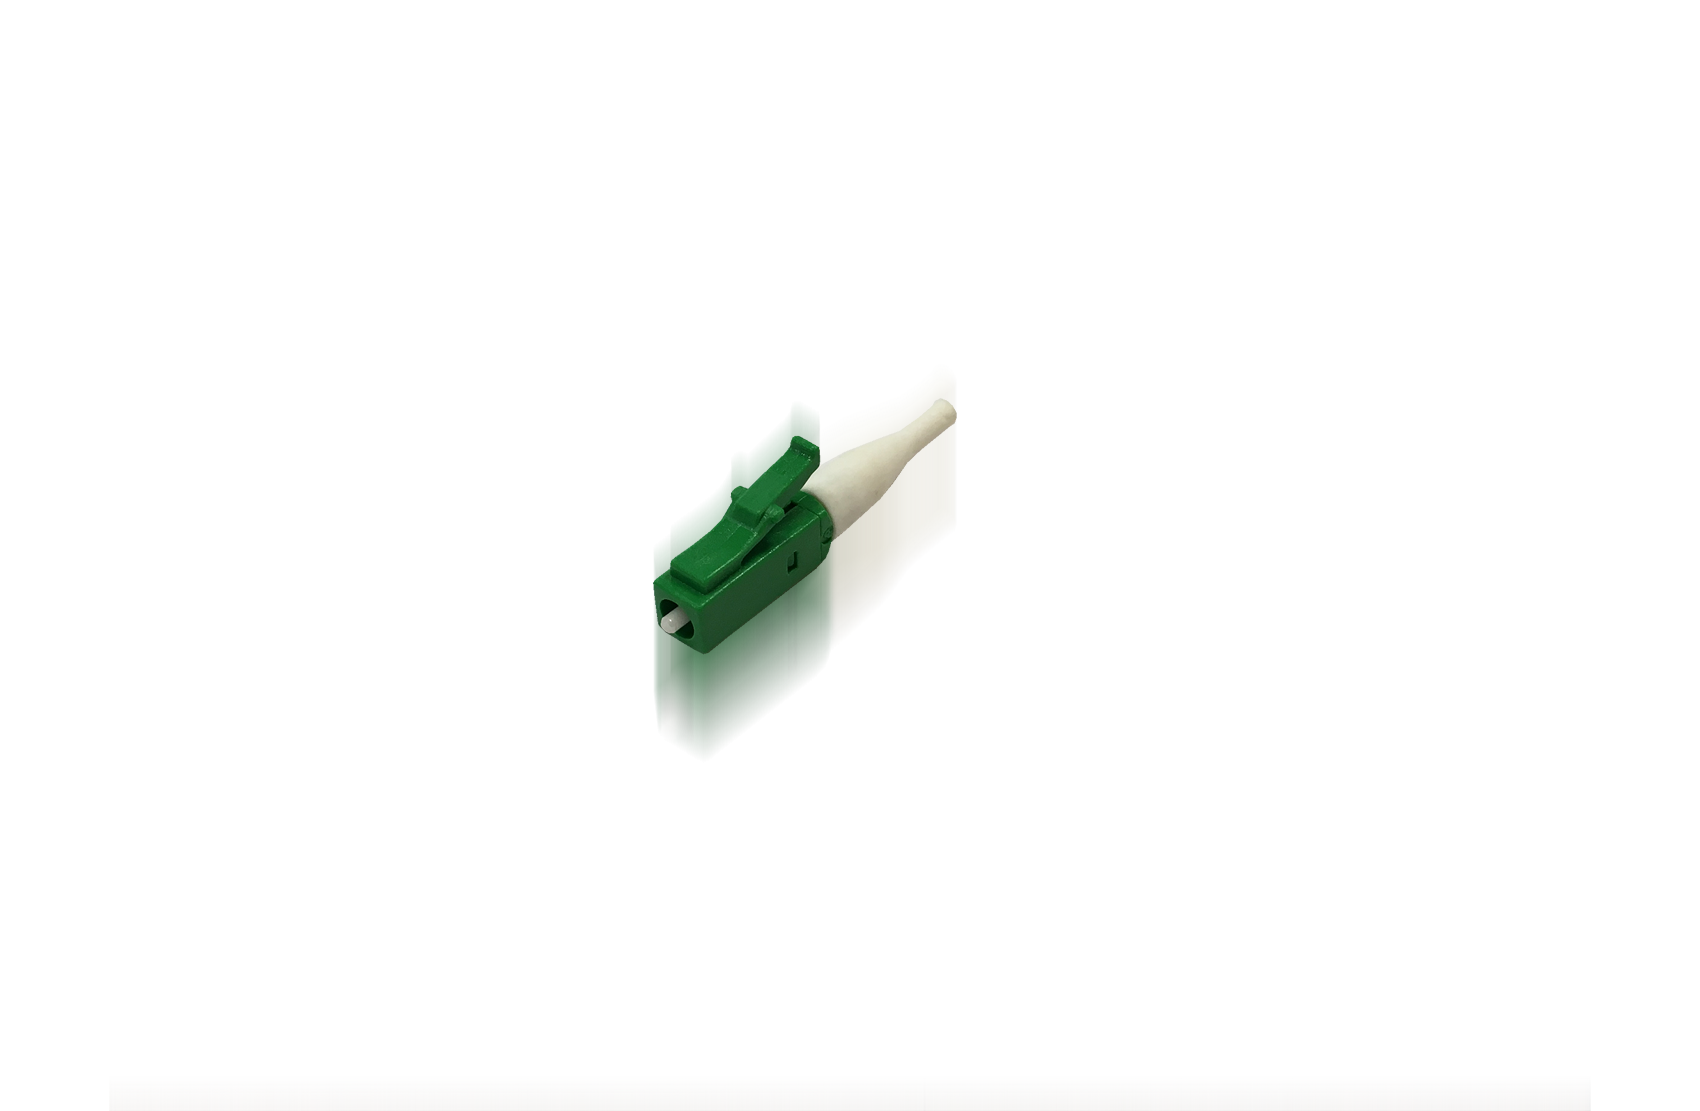 304004 LC Connector